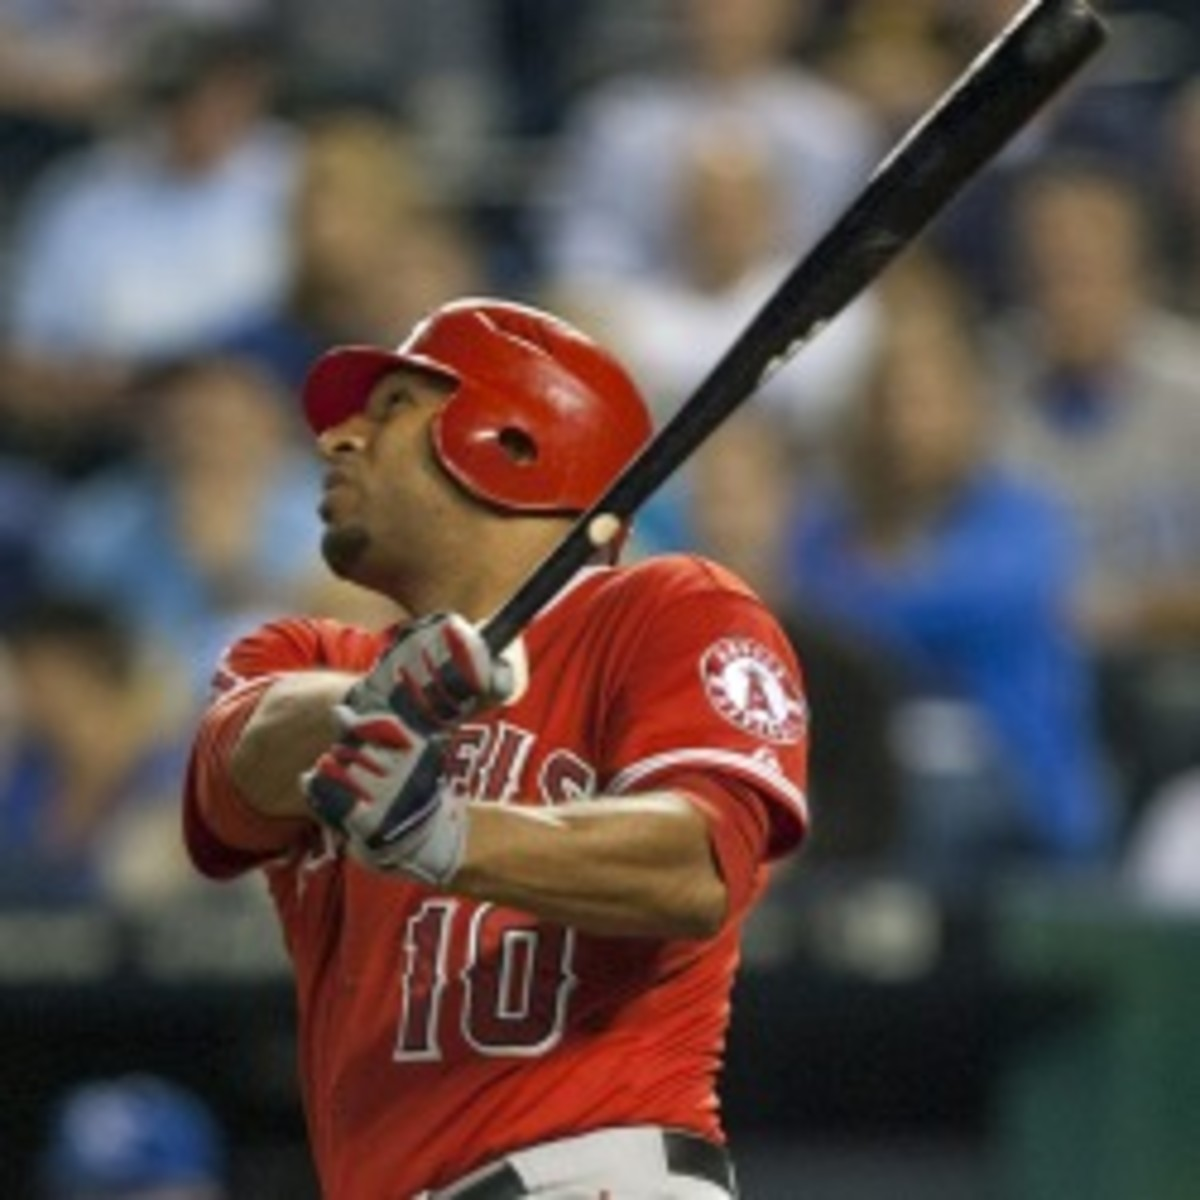 Angels outfielder Vernon Wells said he will retire after the 2014 season. (Tim Umphrey/Getty Images)